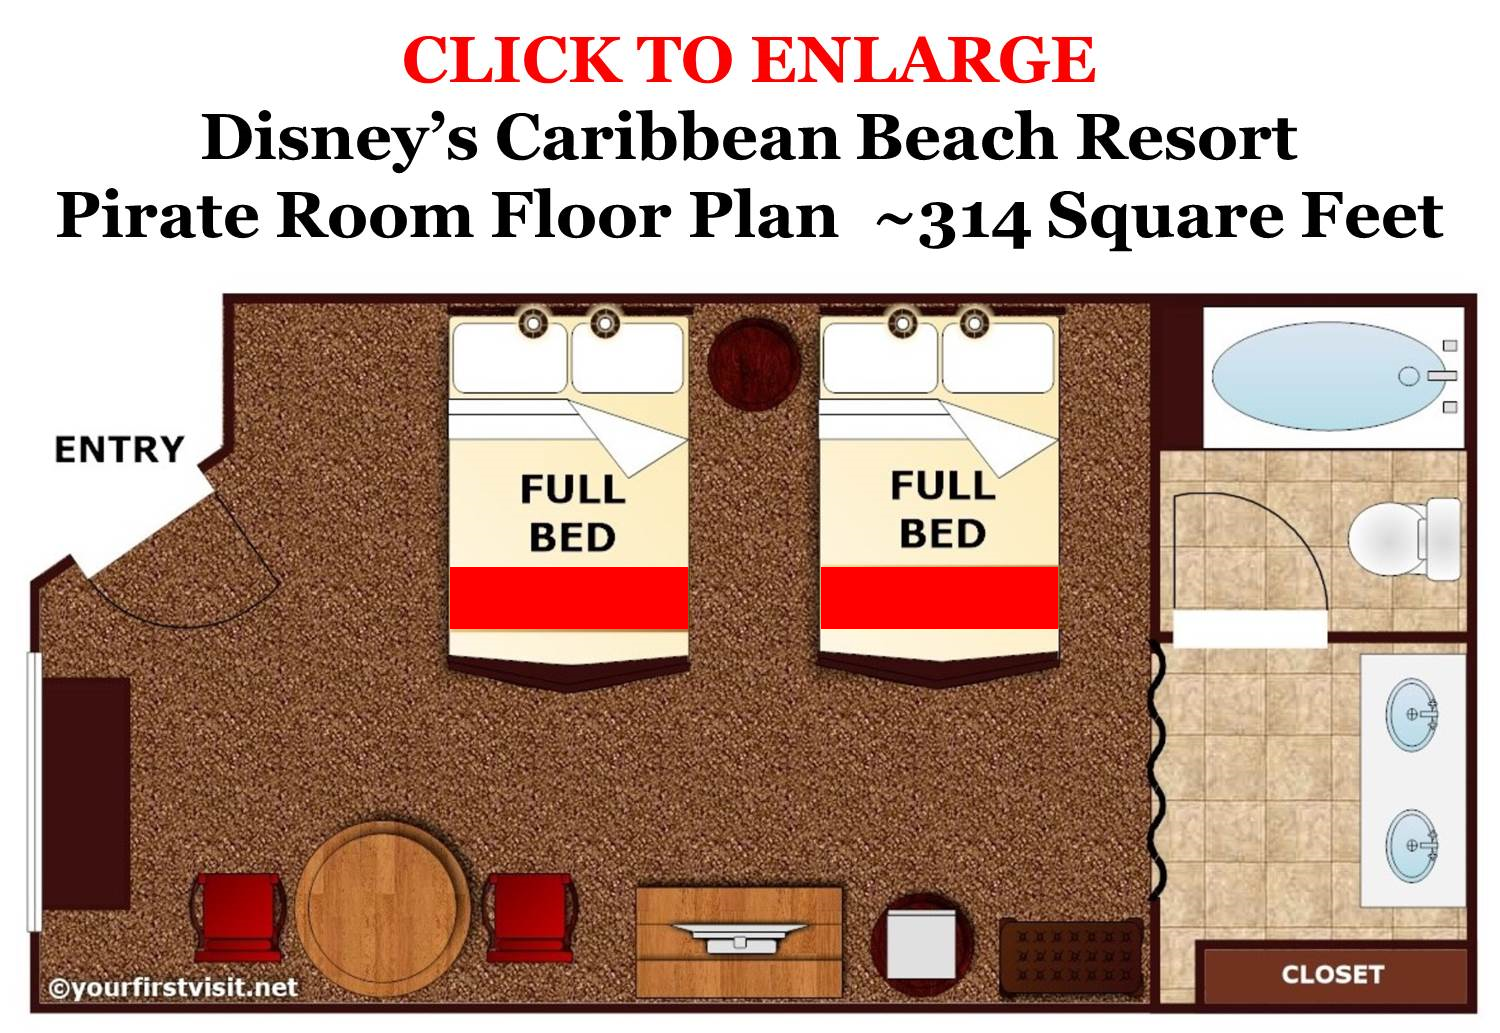 Floor Plan Pirate Room Disney's Caribbean Beach Resort from yourfirstvisit.net